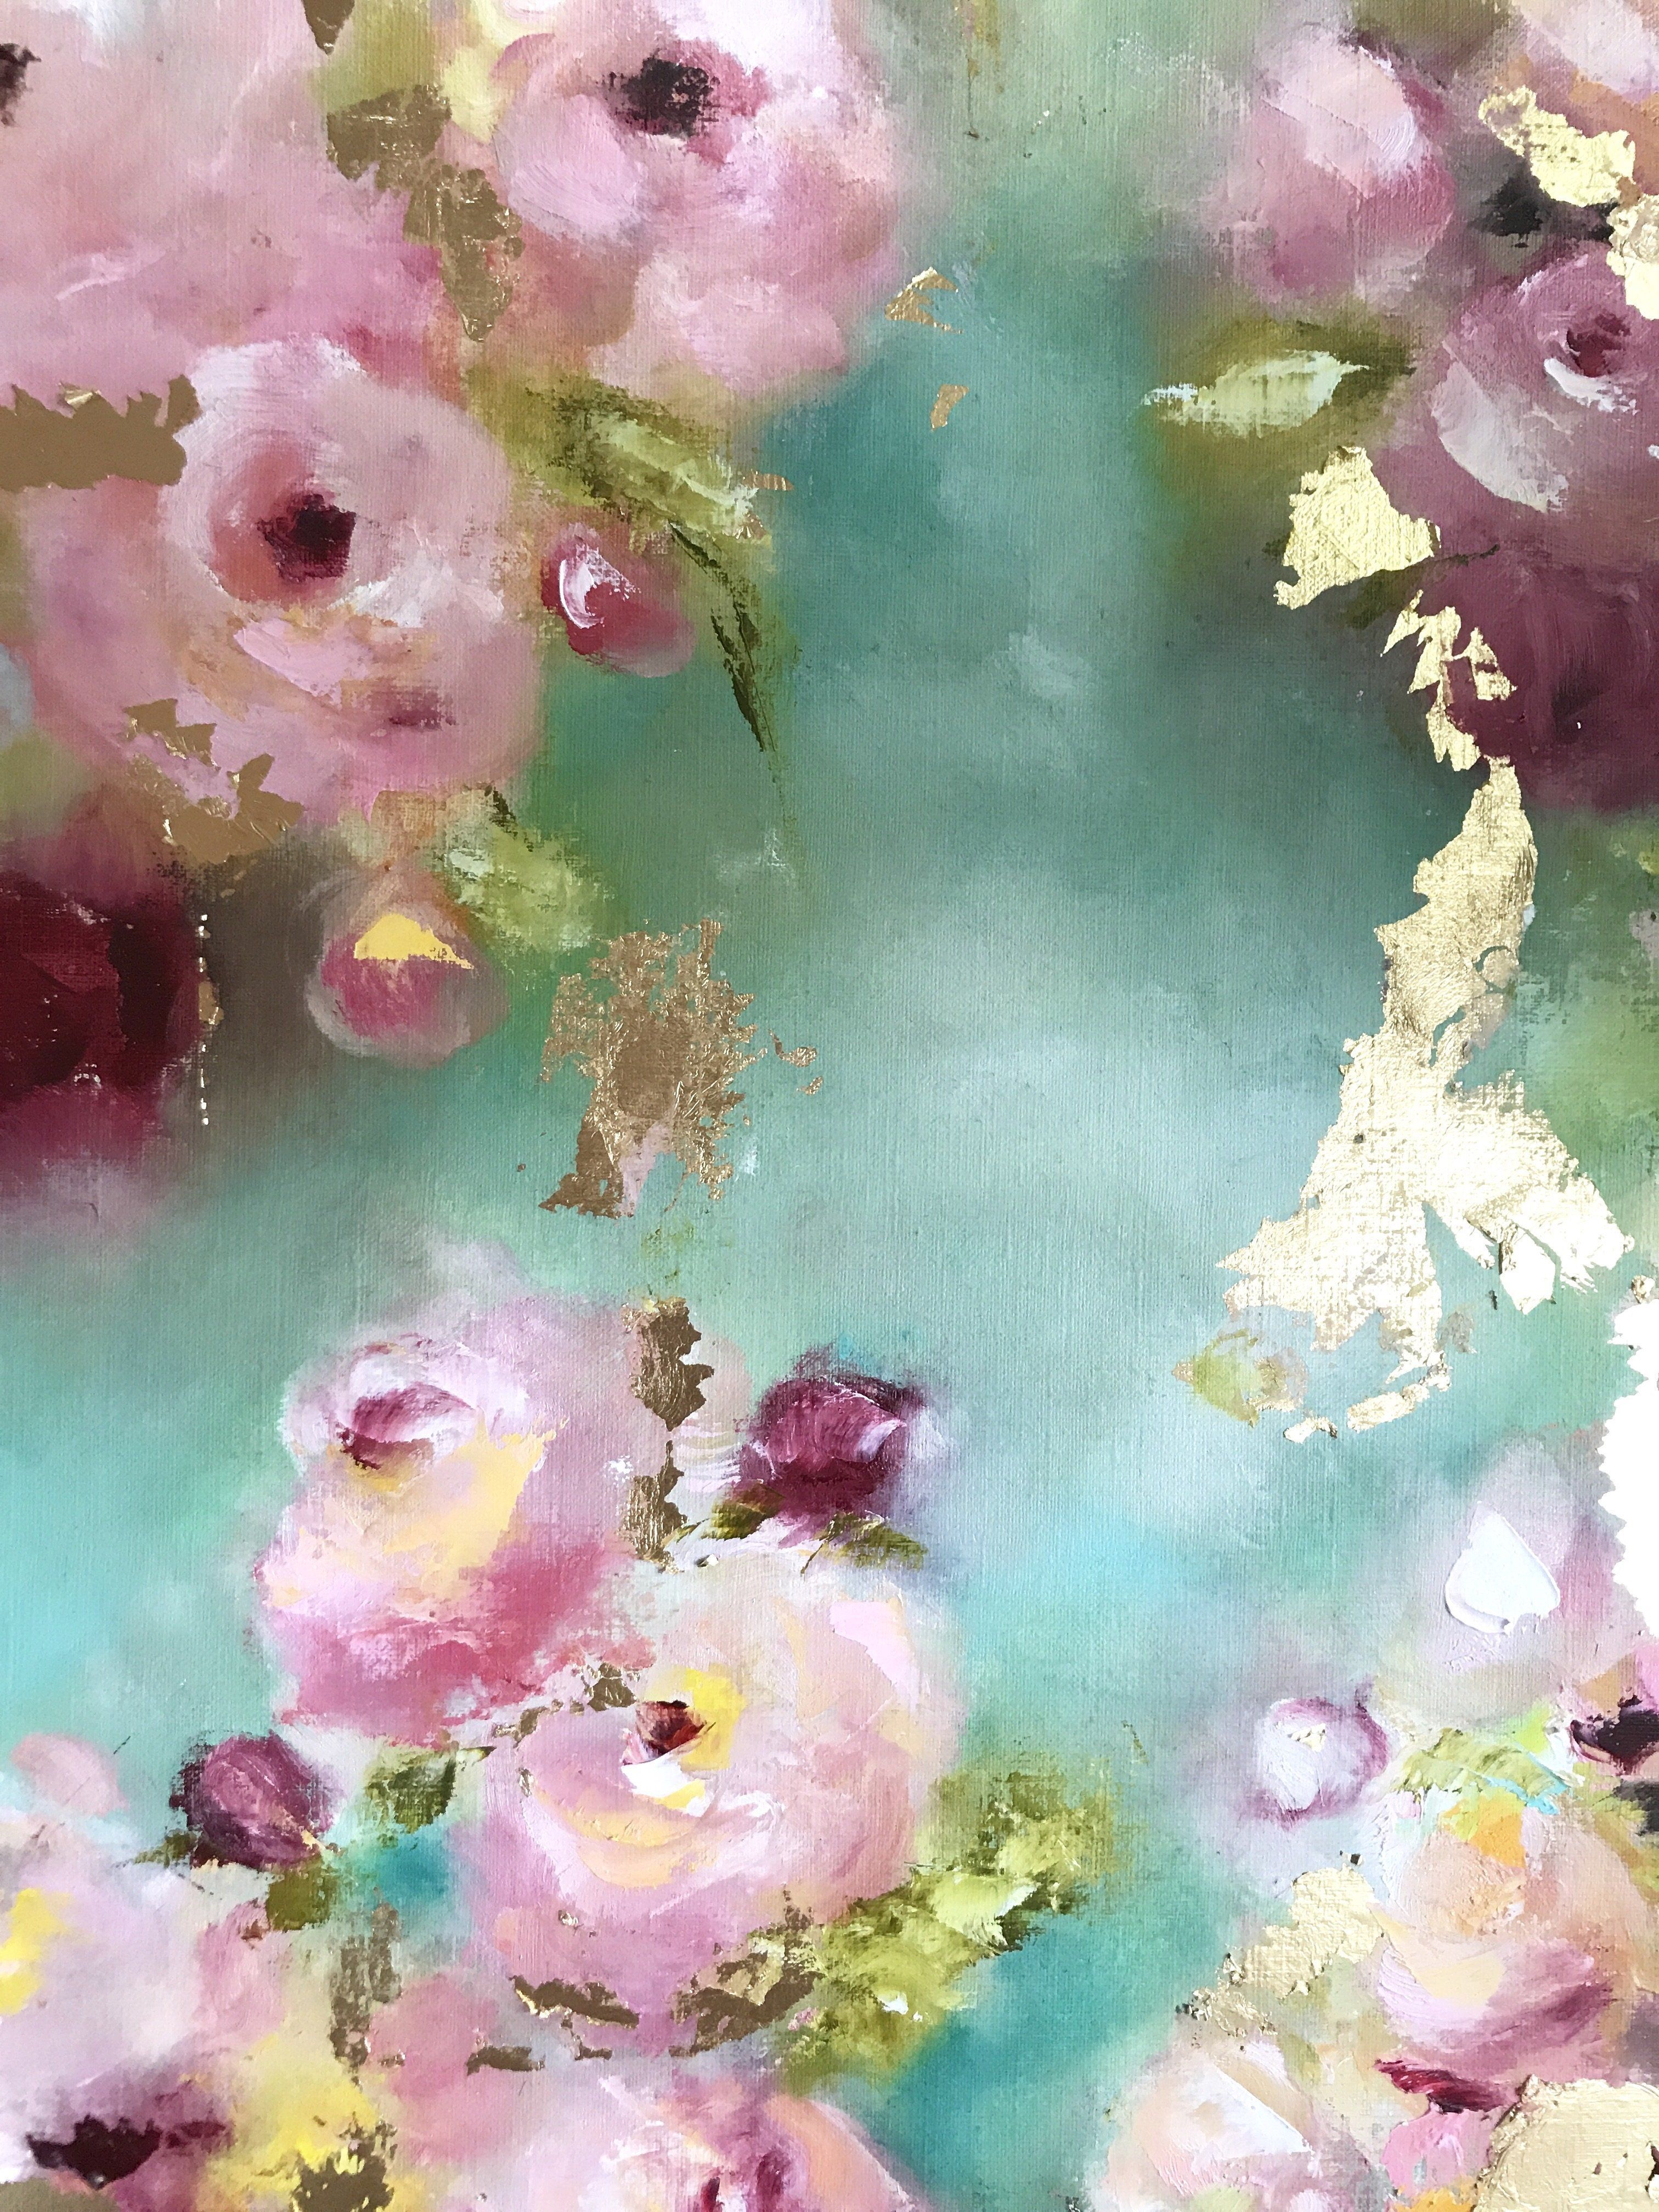 alcohol ink classes near me